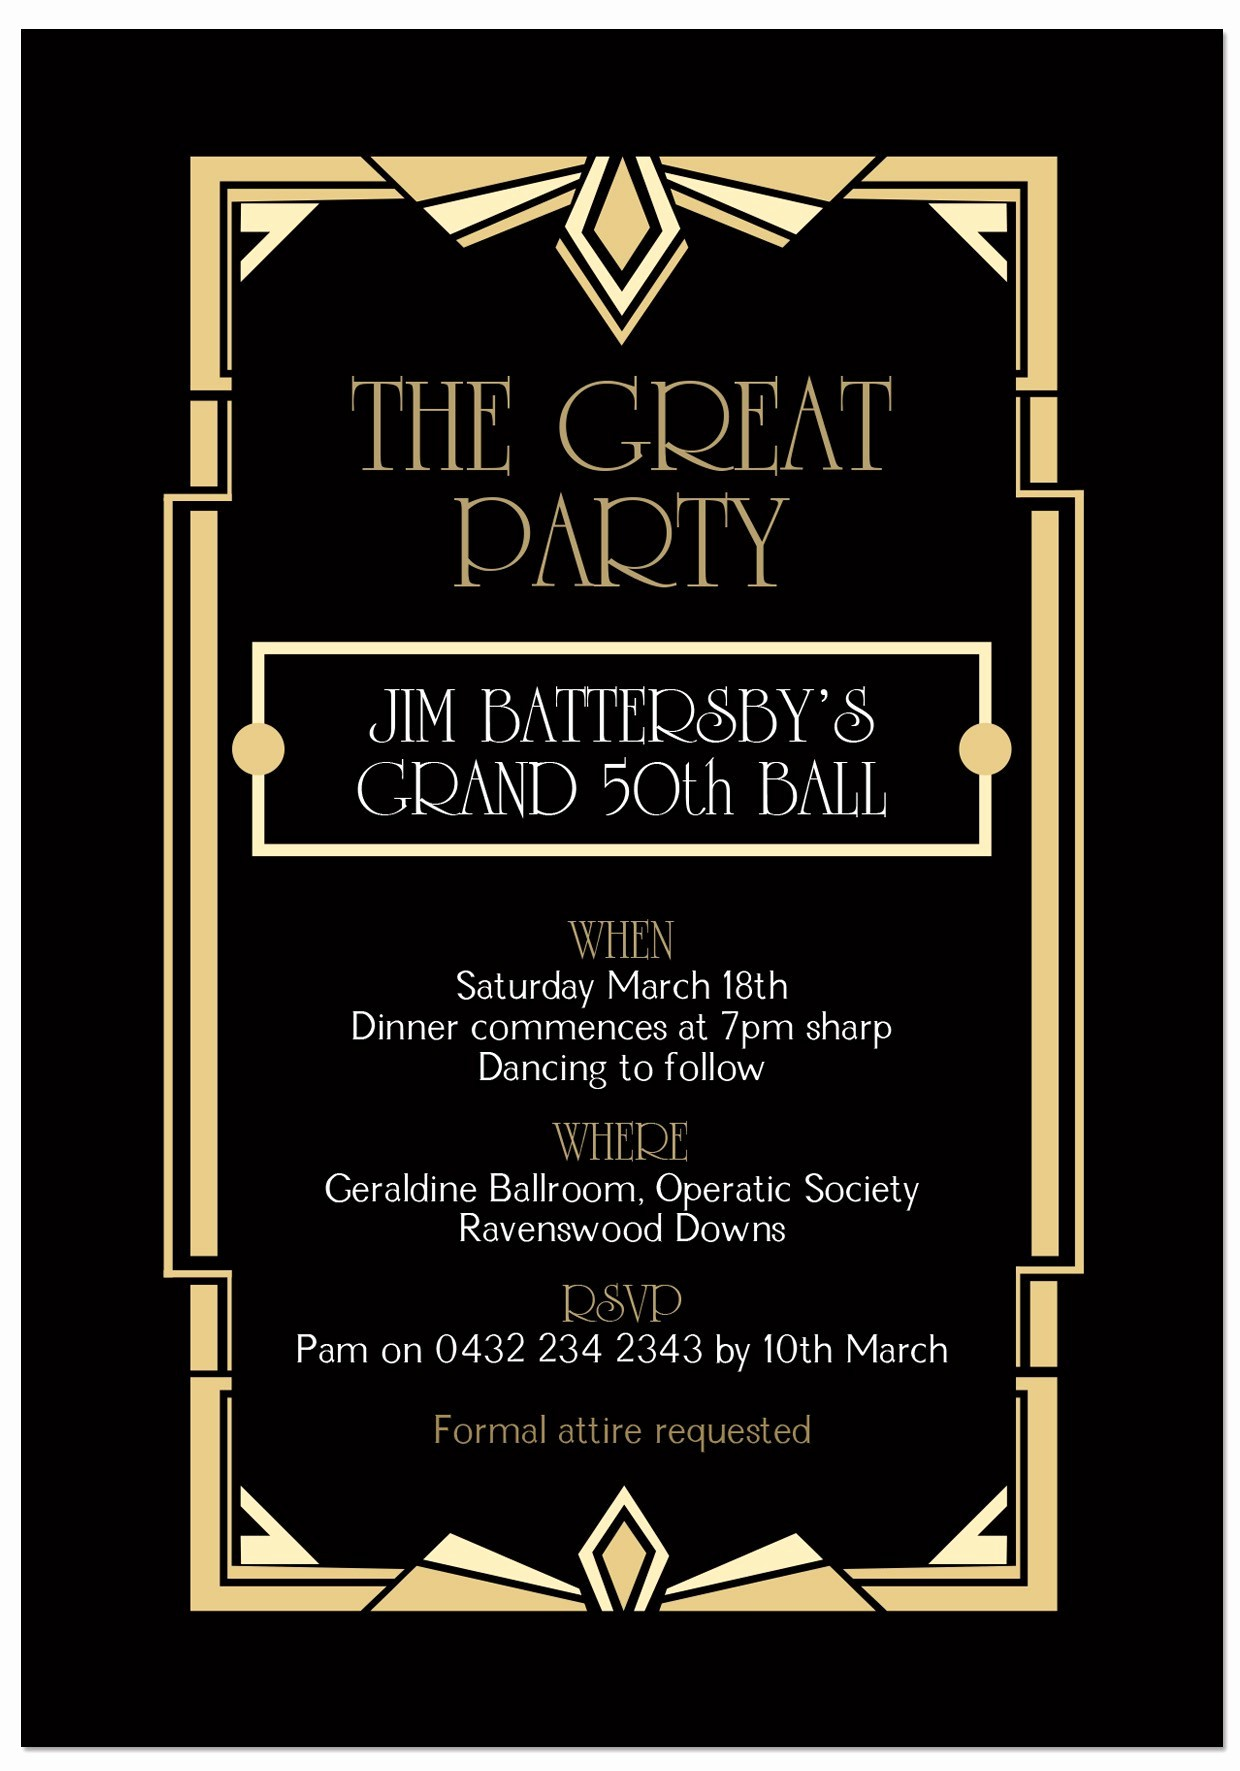 Year End Party Invitation Templates Awesome End the Year Party Invitation Templates Best